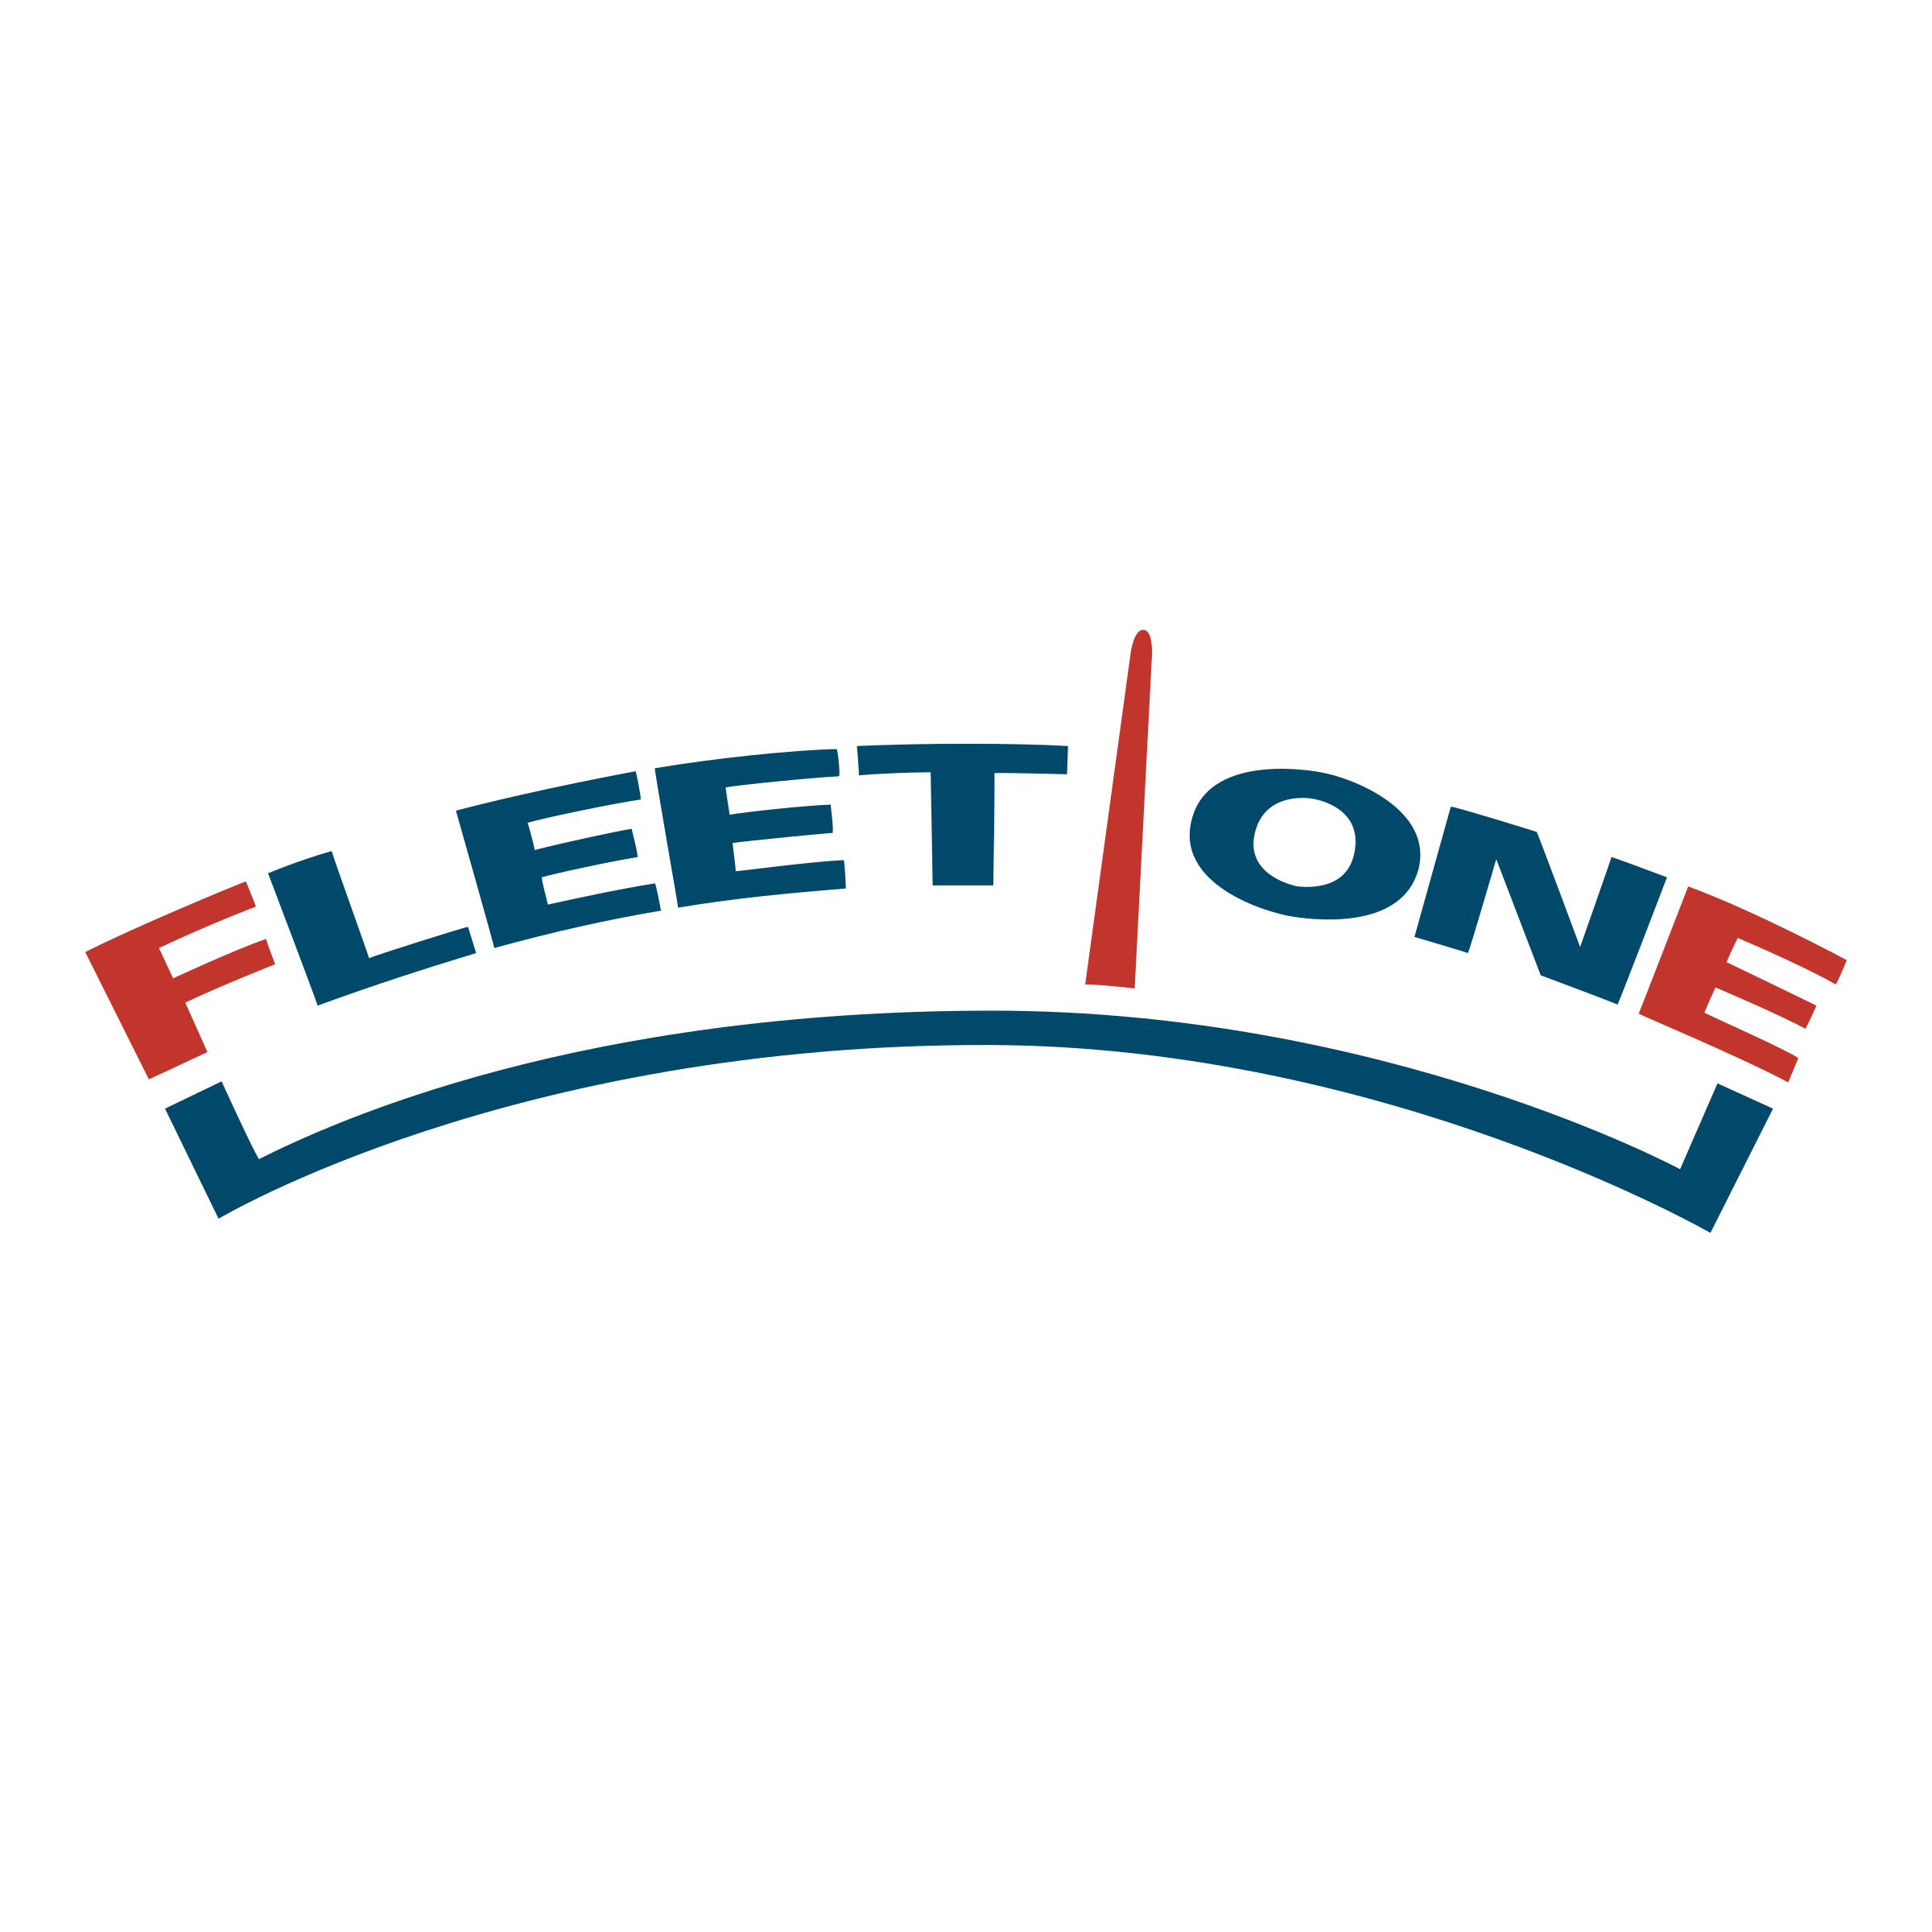 Fleet One logo